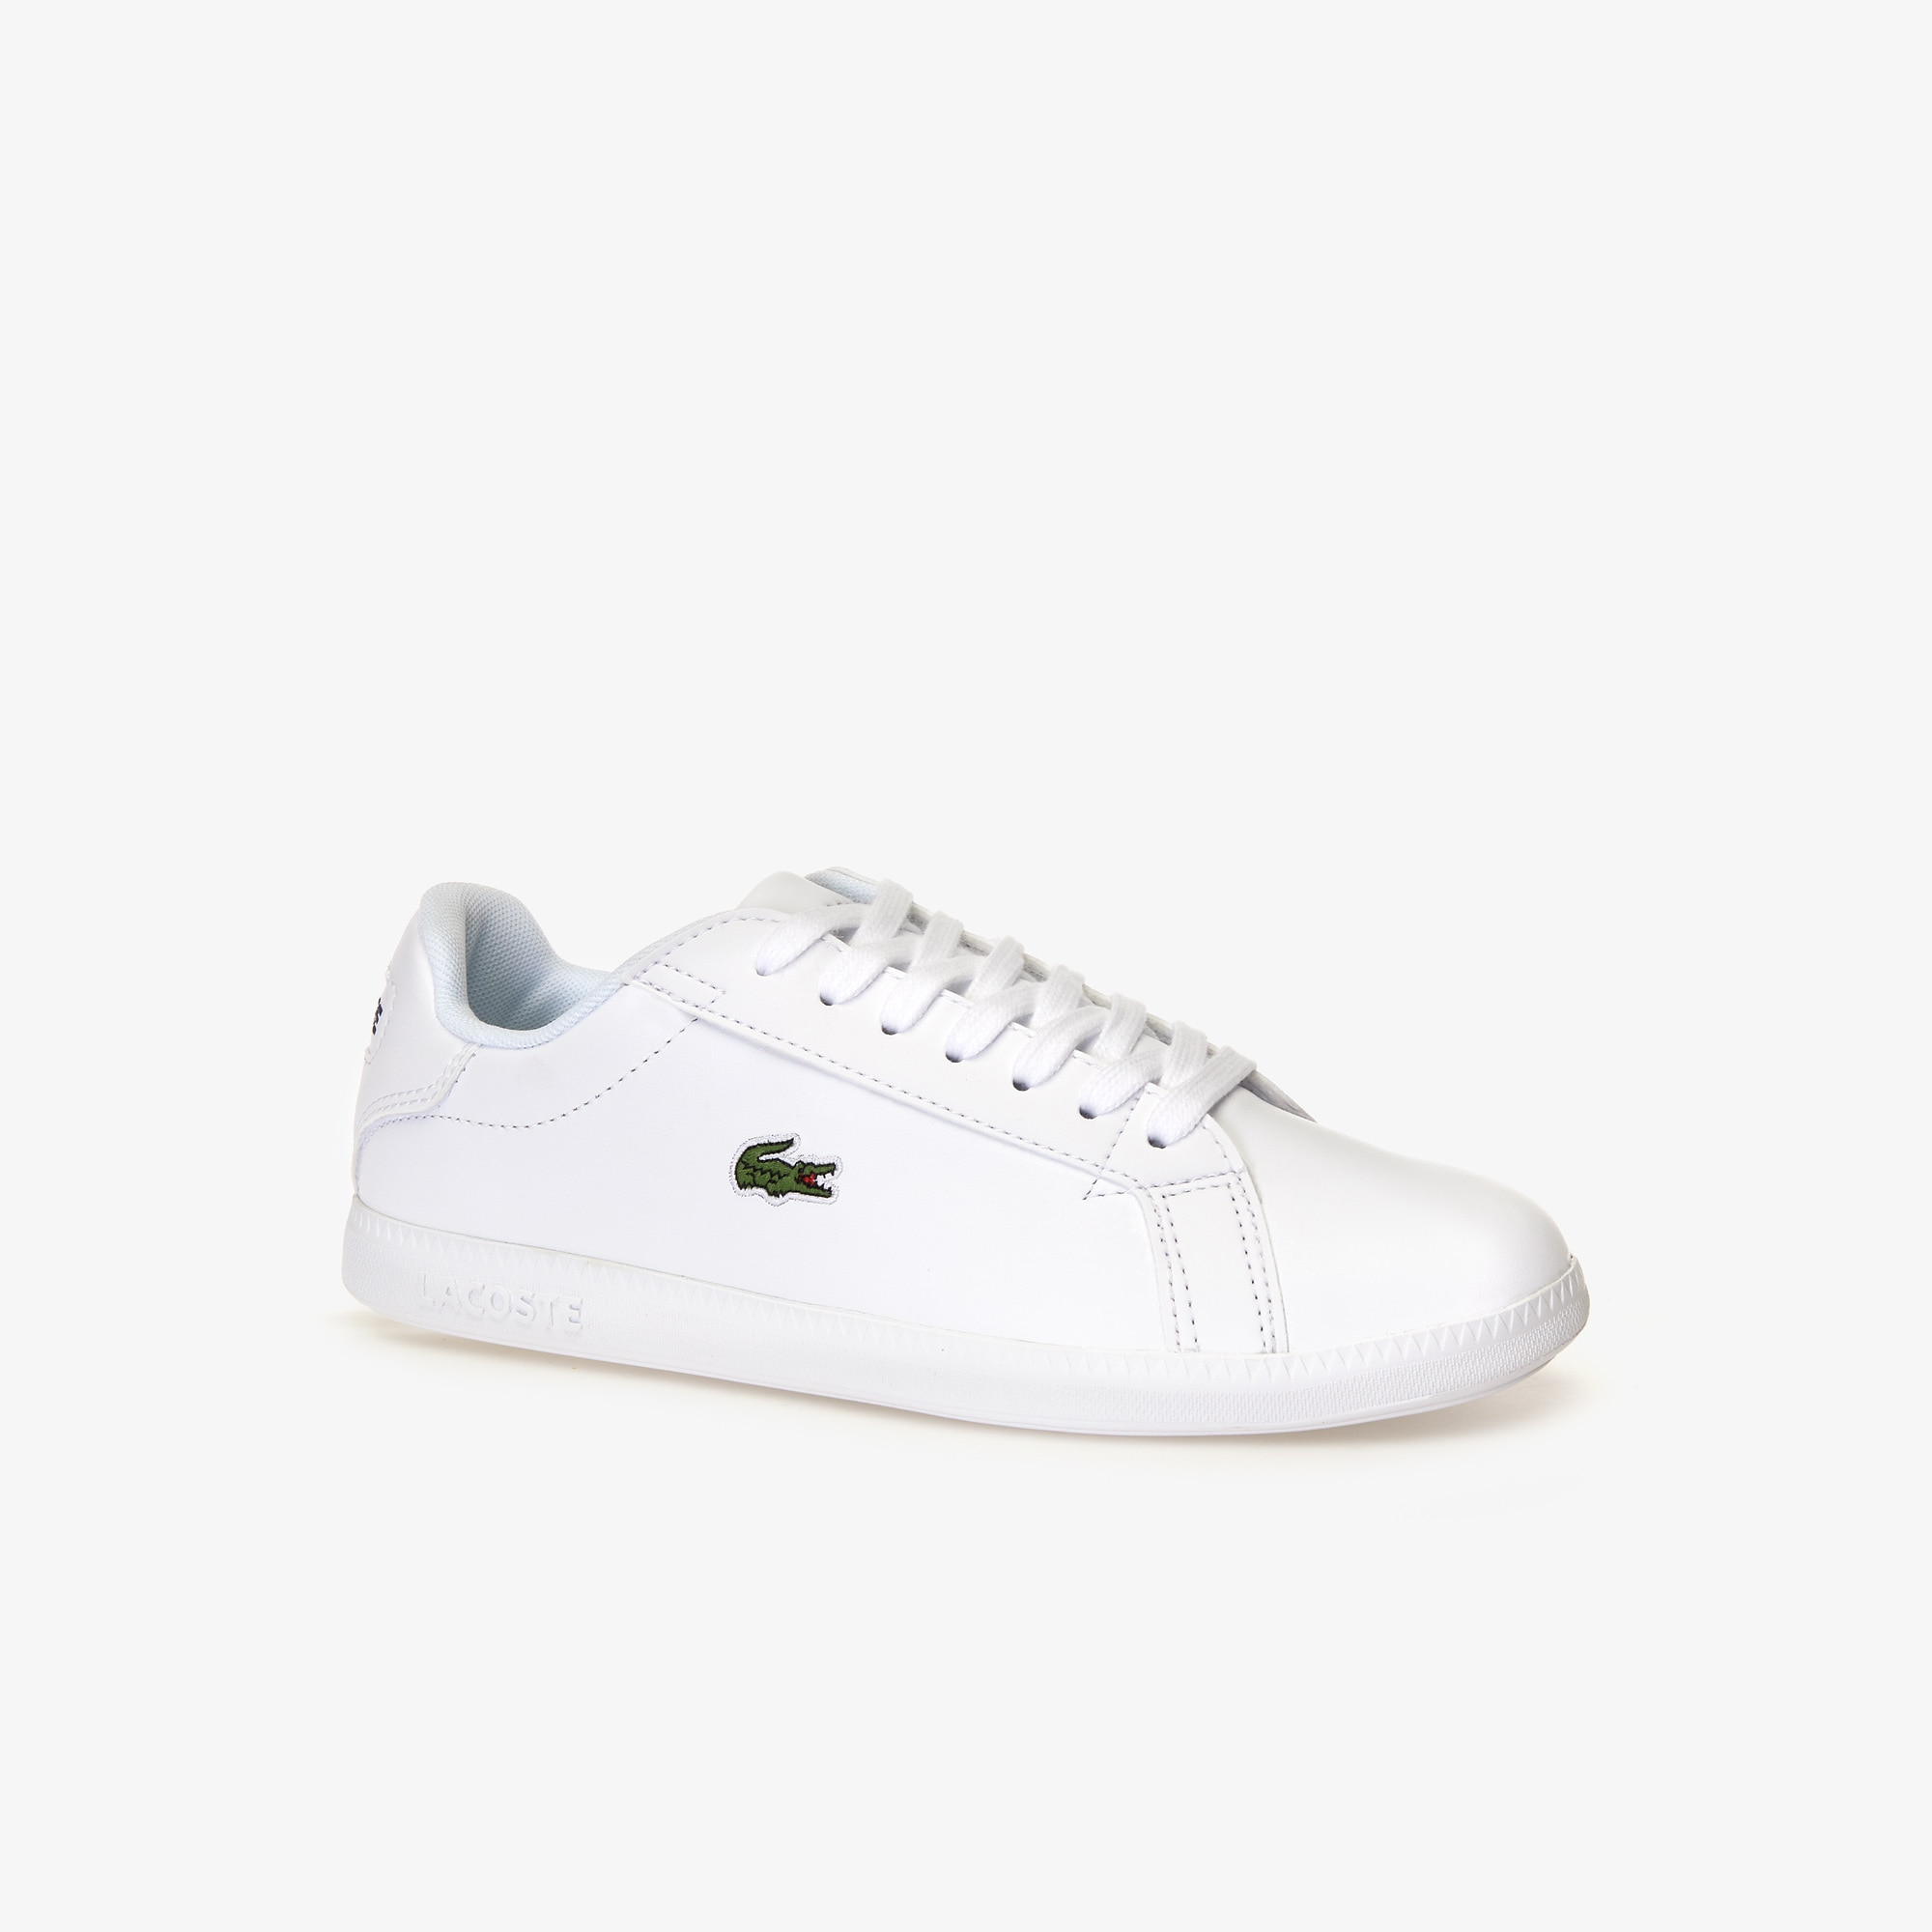 FemmeCollection Lacoste Lacoste Chaussures Chaussures Chaussures FemmeCollection FemmeCollection FemmeCollection Lacoste Lacoste Chaussures Yb6gyf7